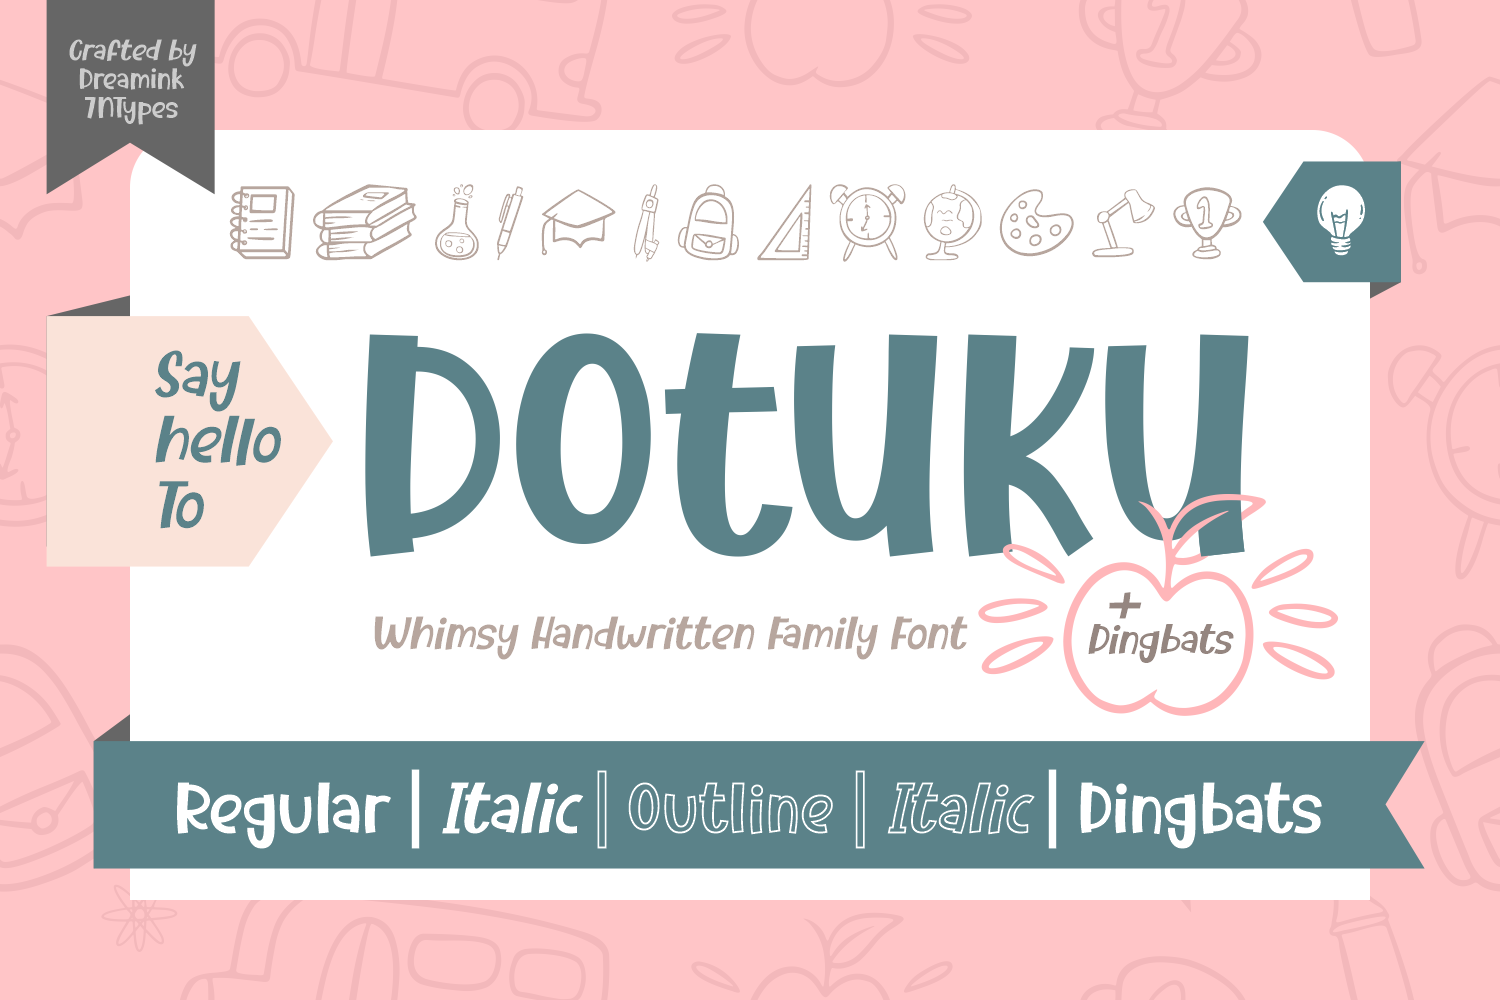 Download Free Dotuku Font By Dreamink 7ntypes Creative Fabrica for Cricut Explore, Silhouette and other cutting machines.